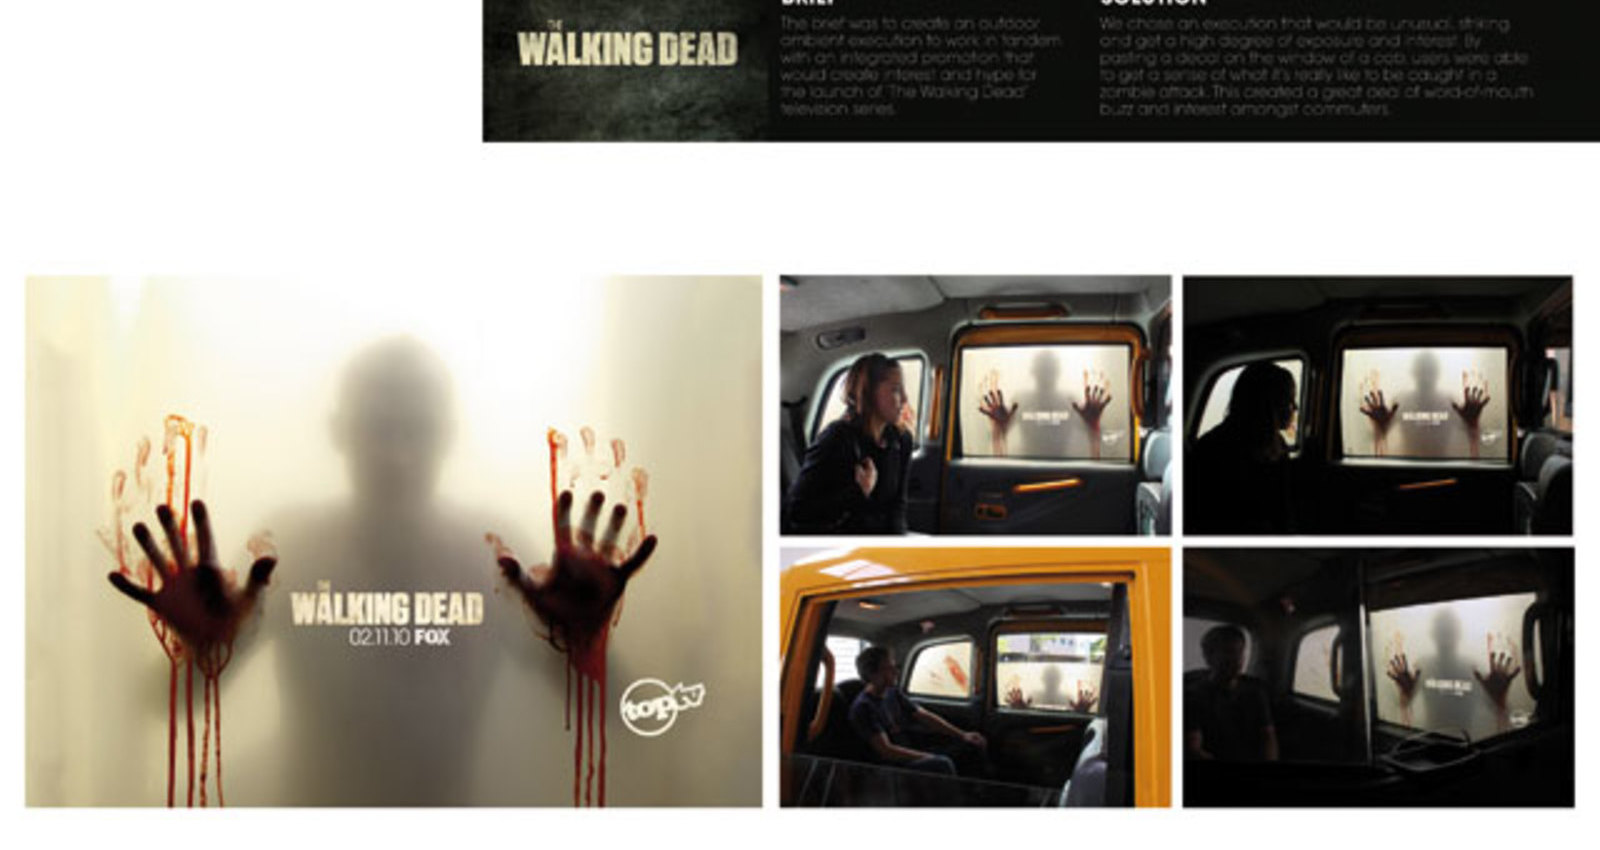 The Walking Dead Cab